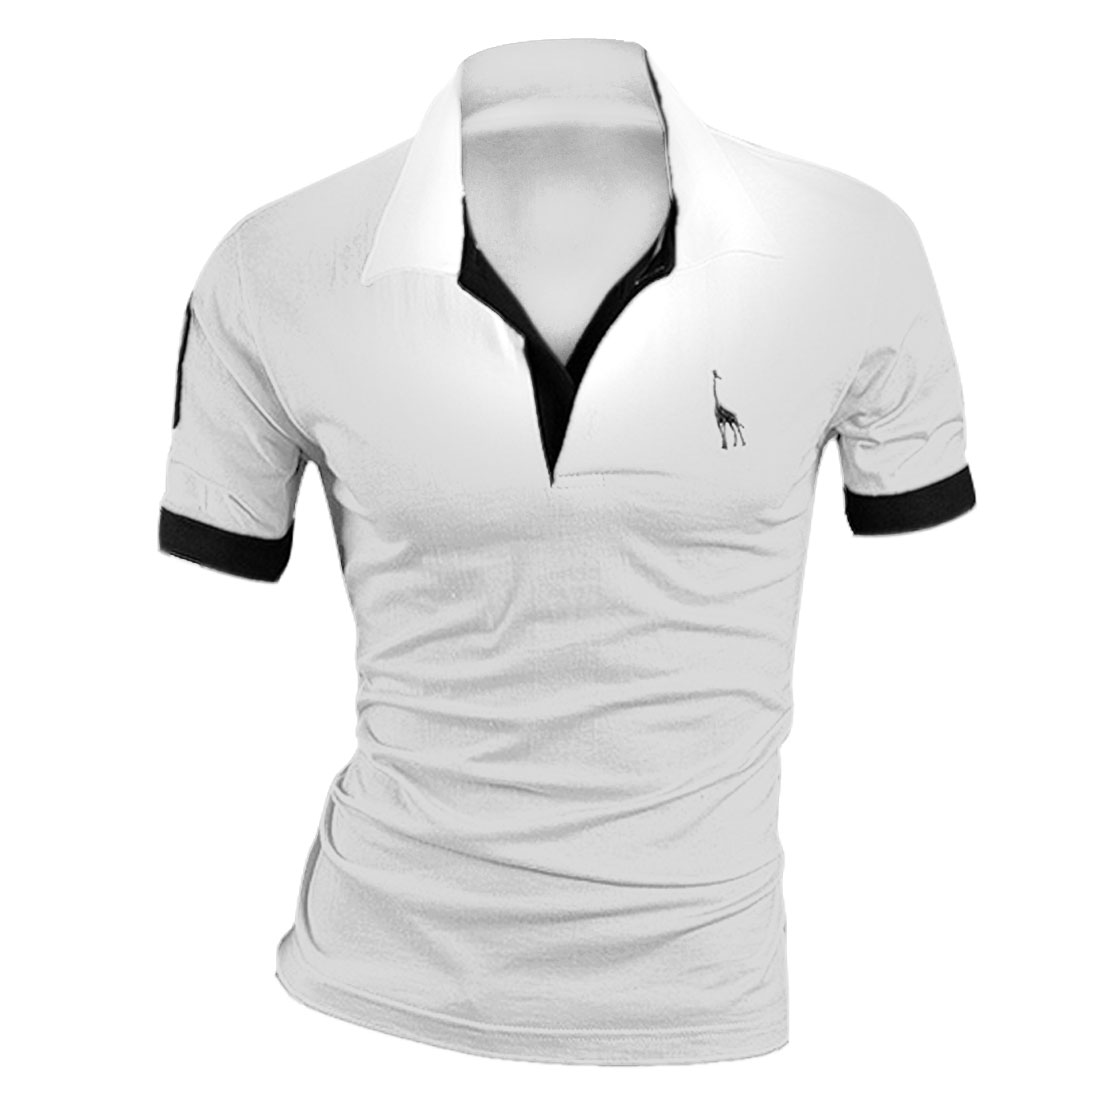 Man Buttons Upper Front Polo Figure Pattern Chic Shirts White M